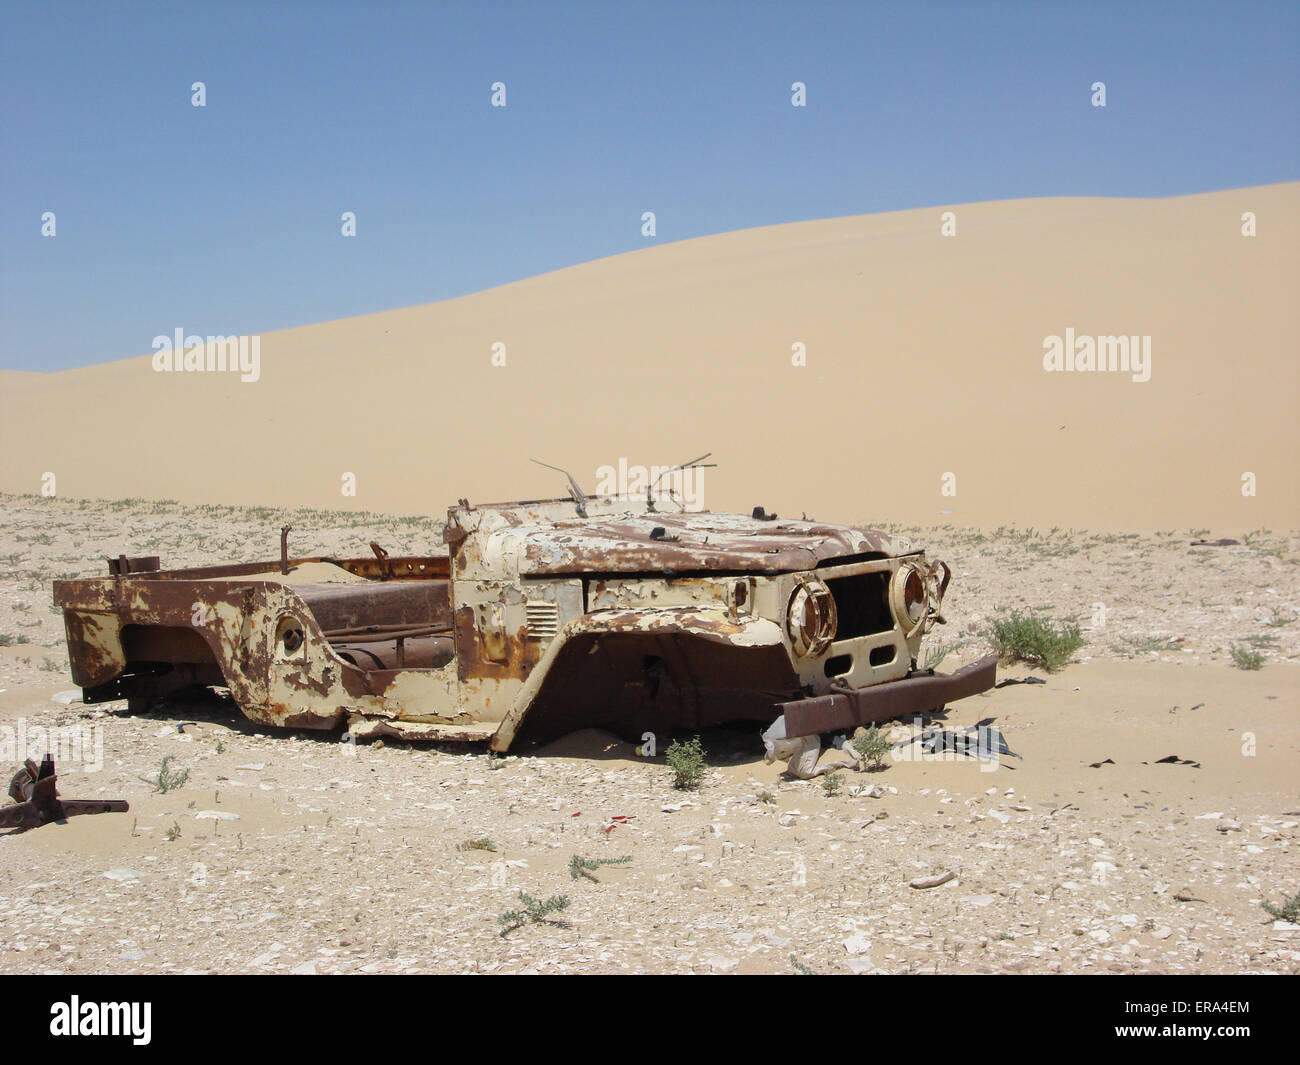 Abandon car in the desert - Stock Image